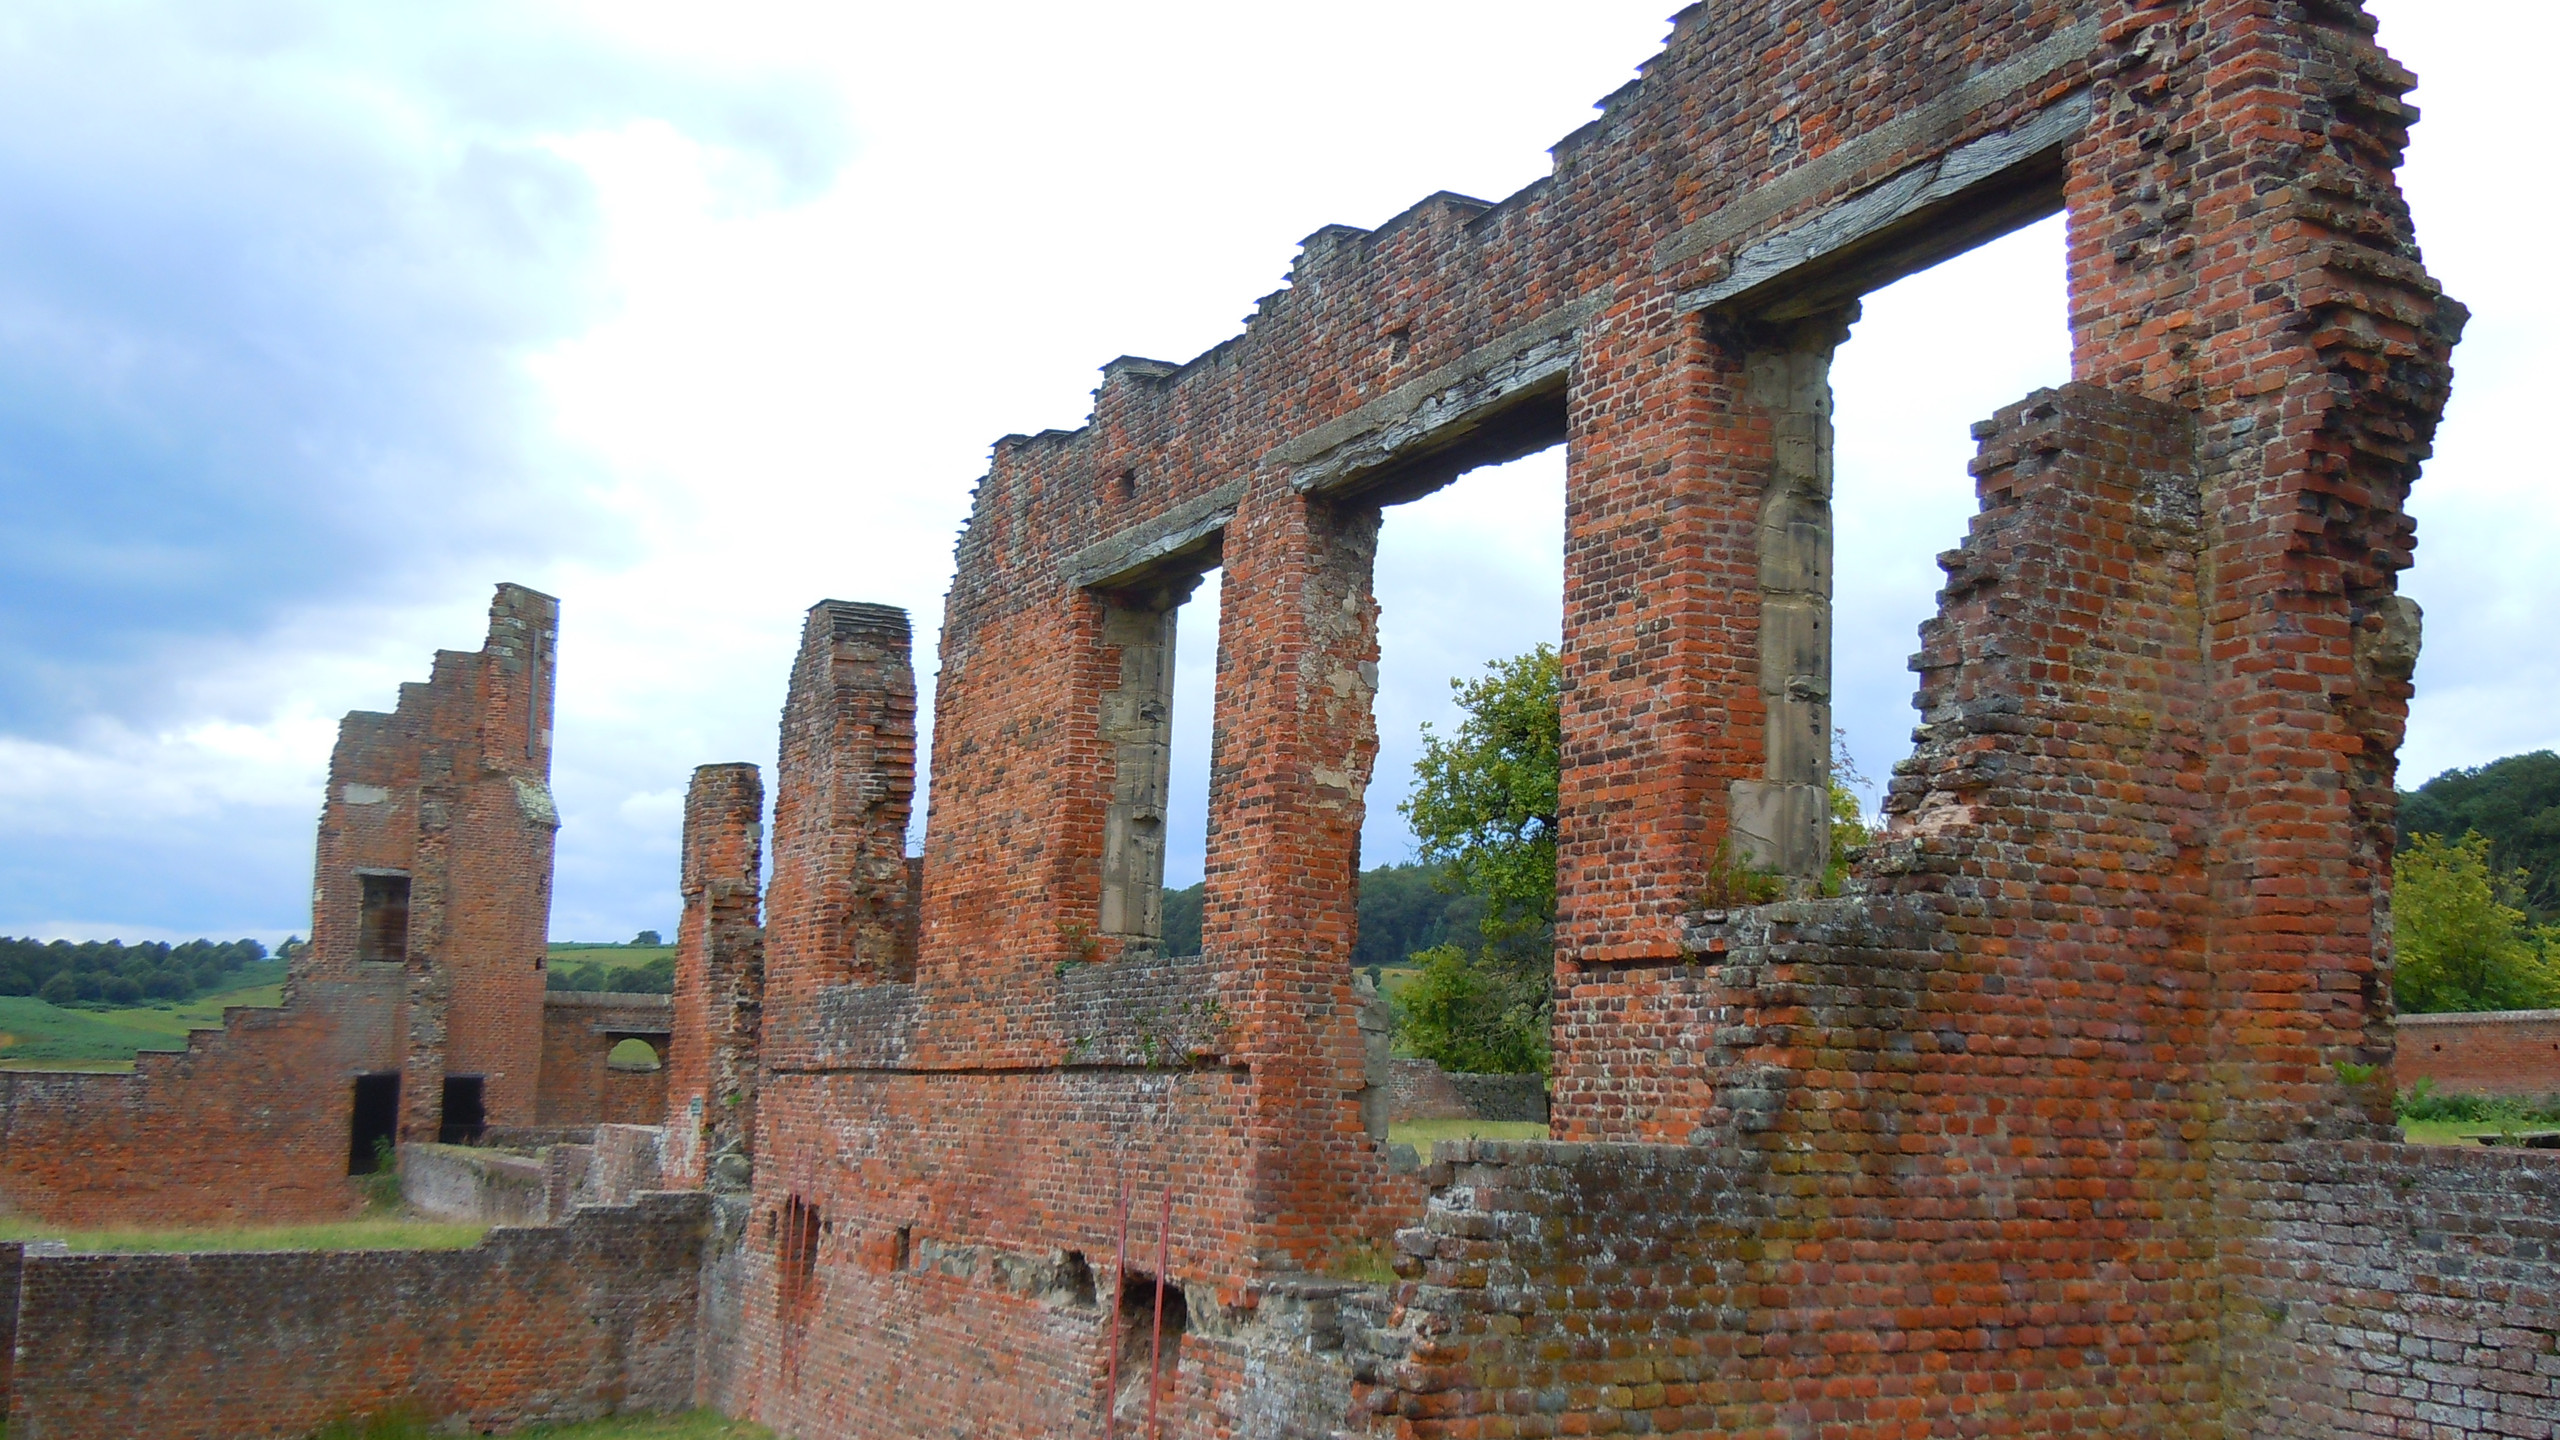 The remains of Bradgate House, home of the Grey family, Lady Jane Grey, Queen of England for nine days was born here in 1537.